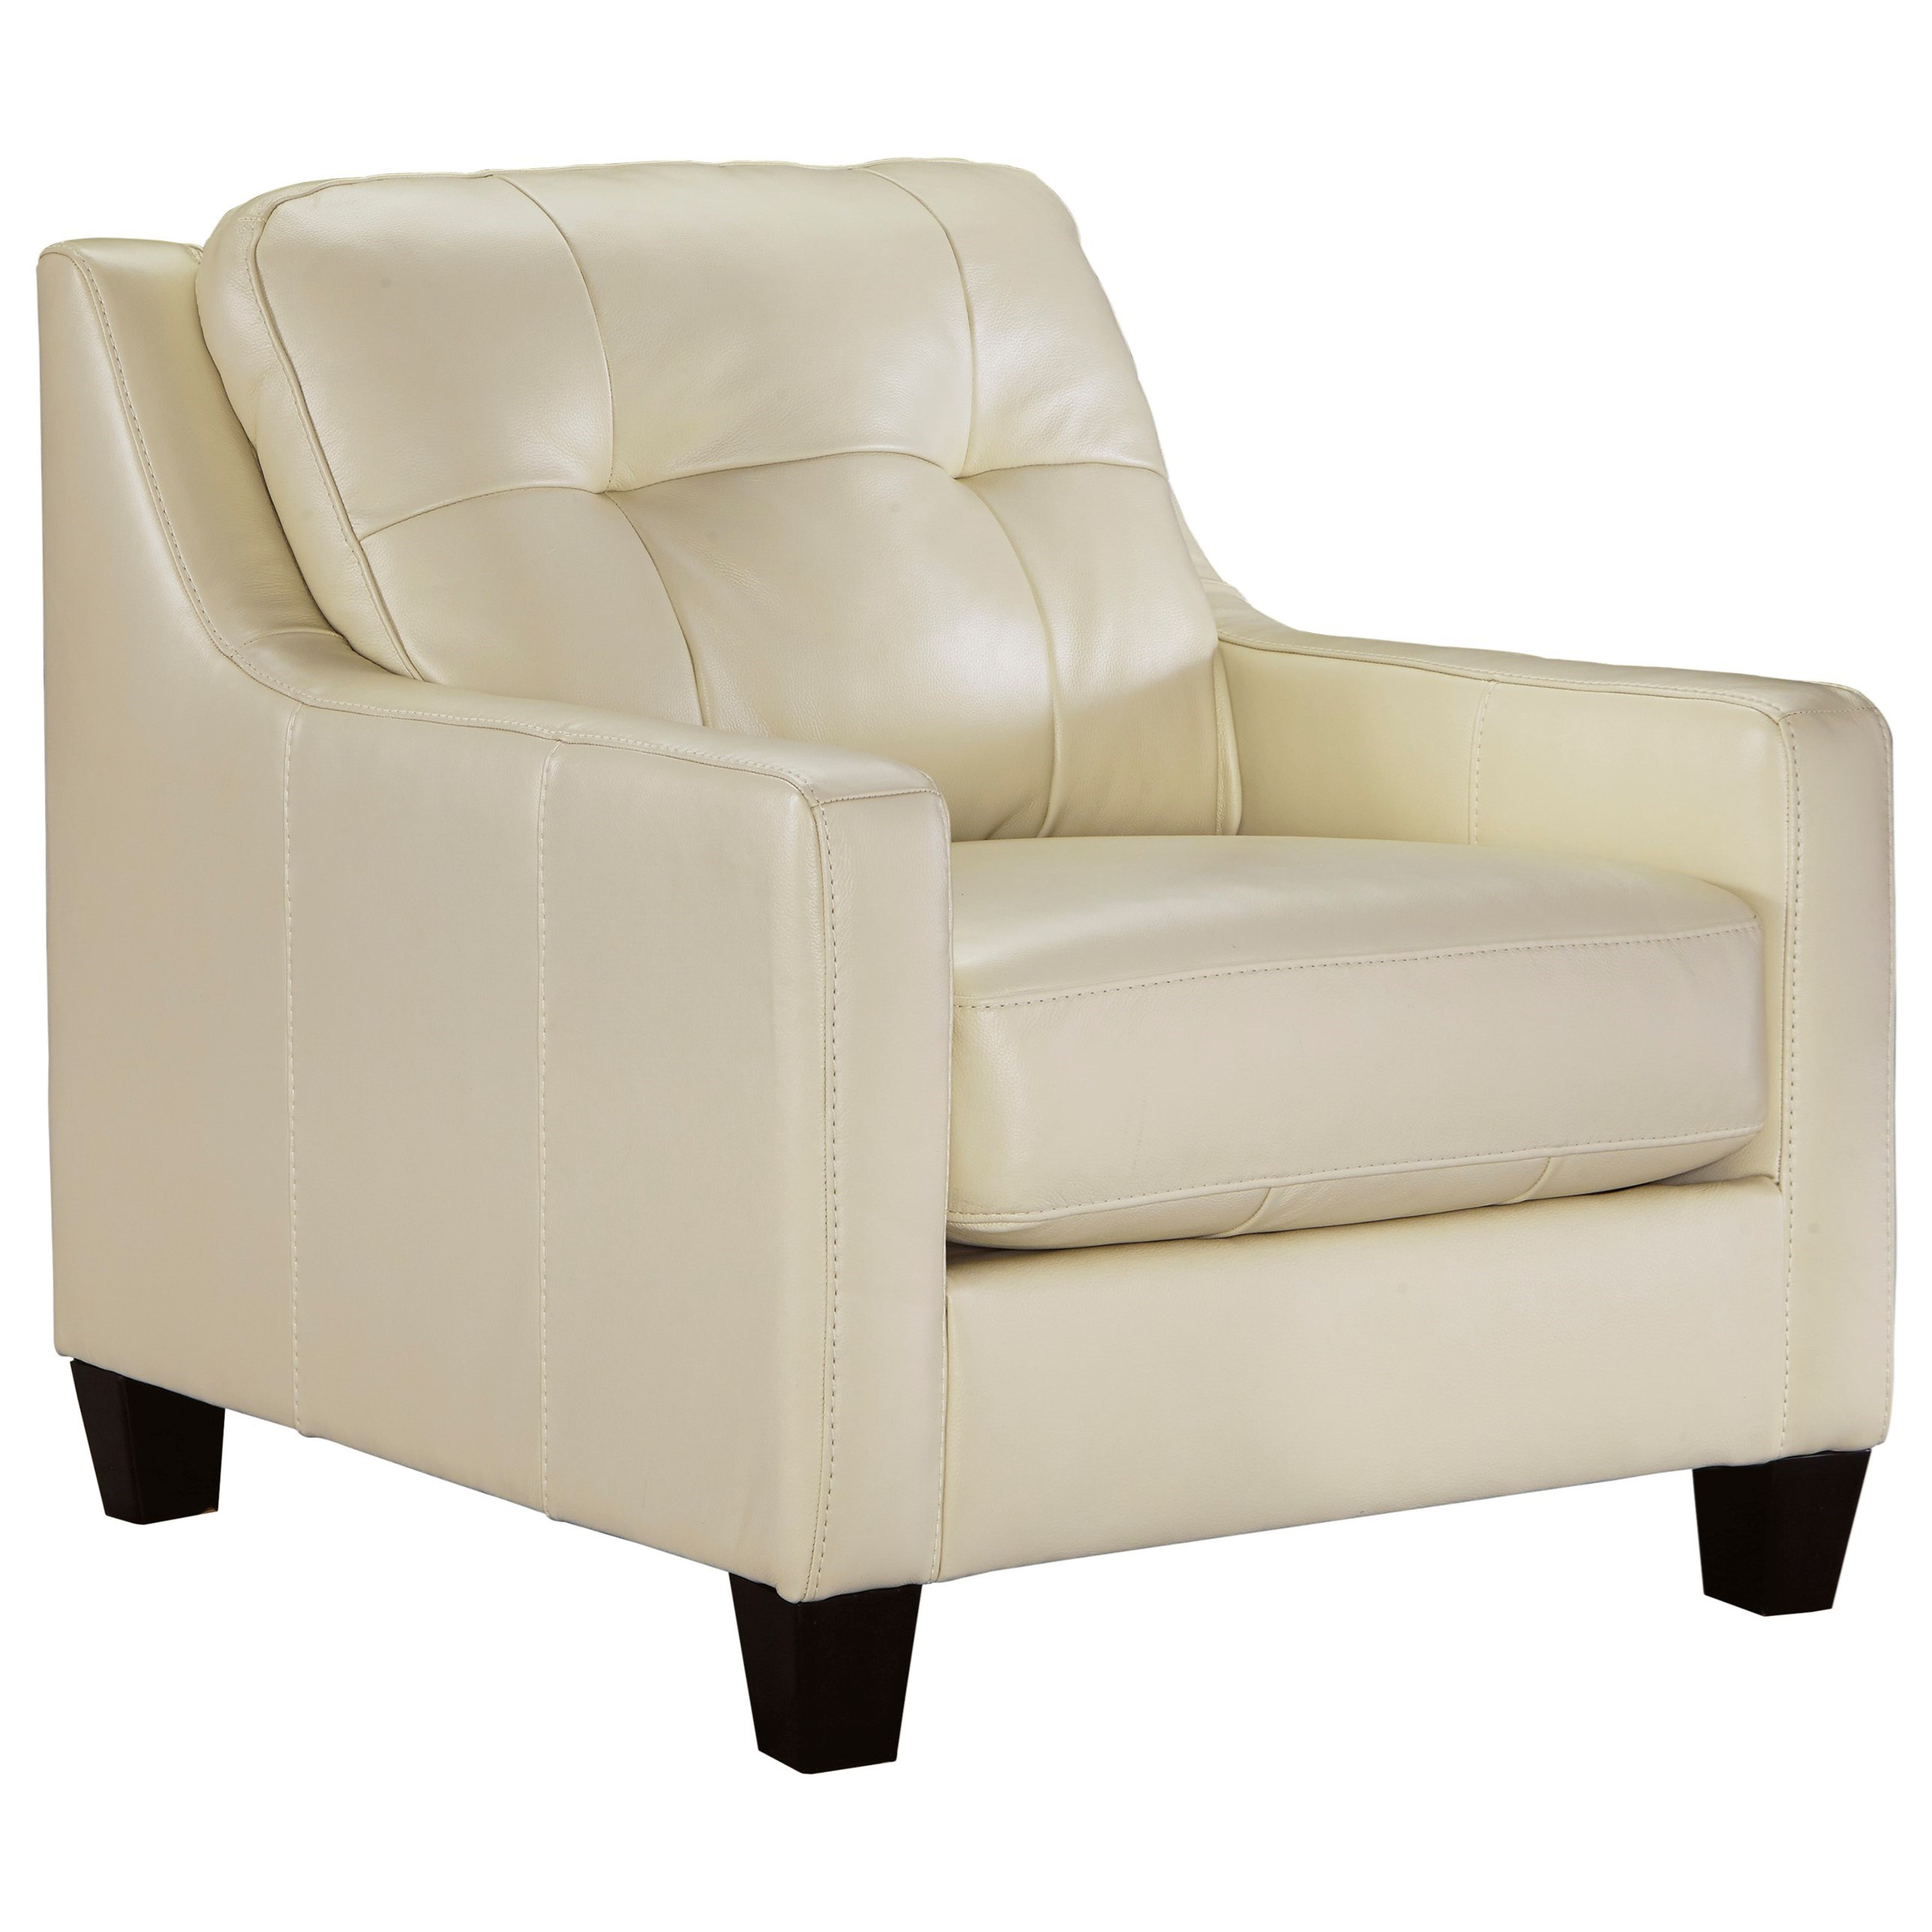 Signature Design by Ashley O'Kean Chair - Item Number: 5910220